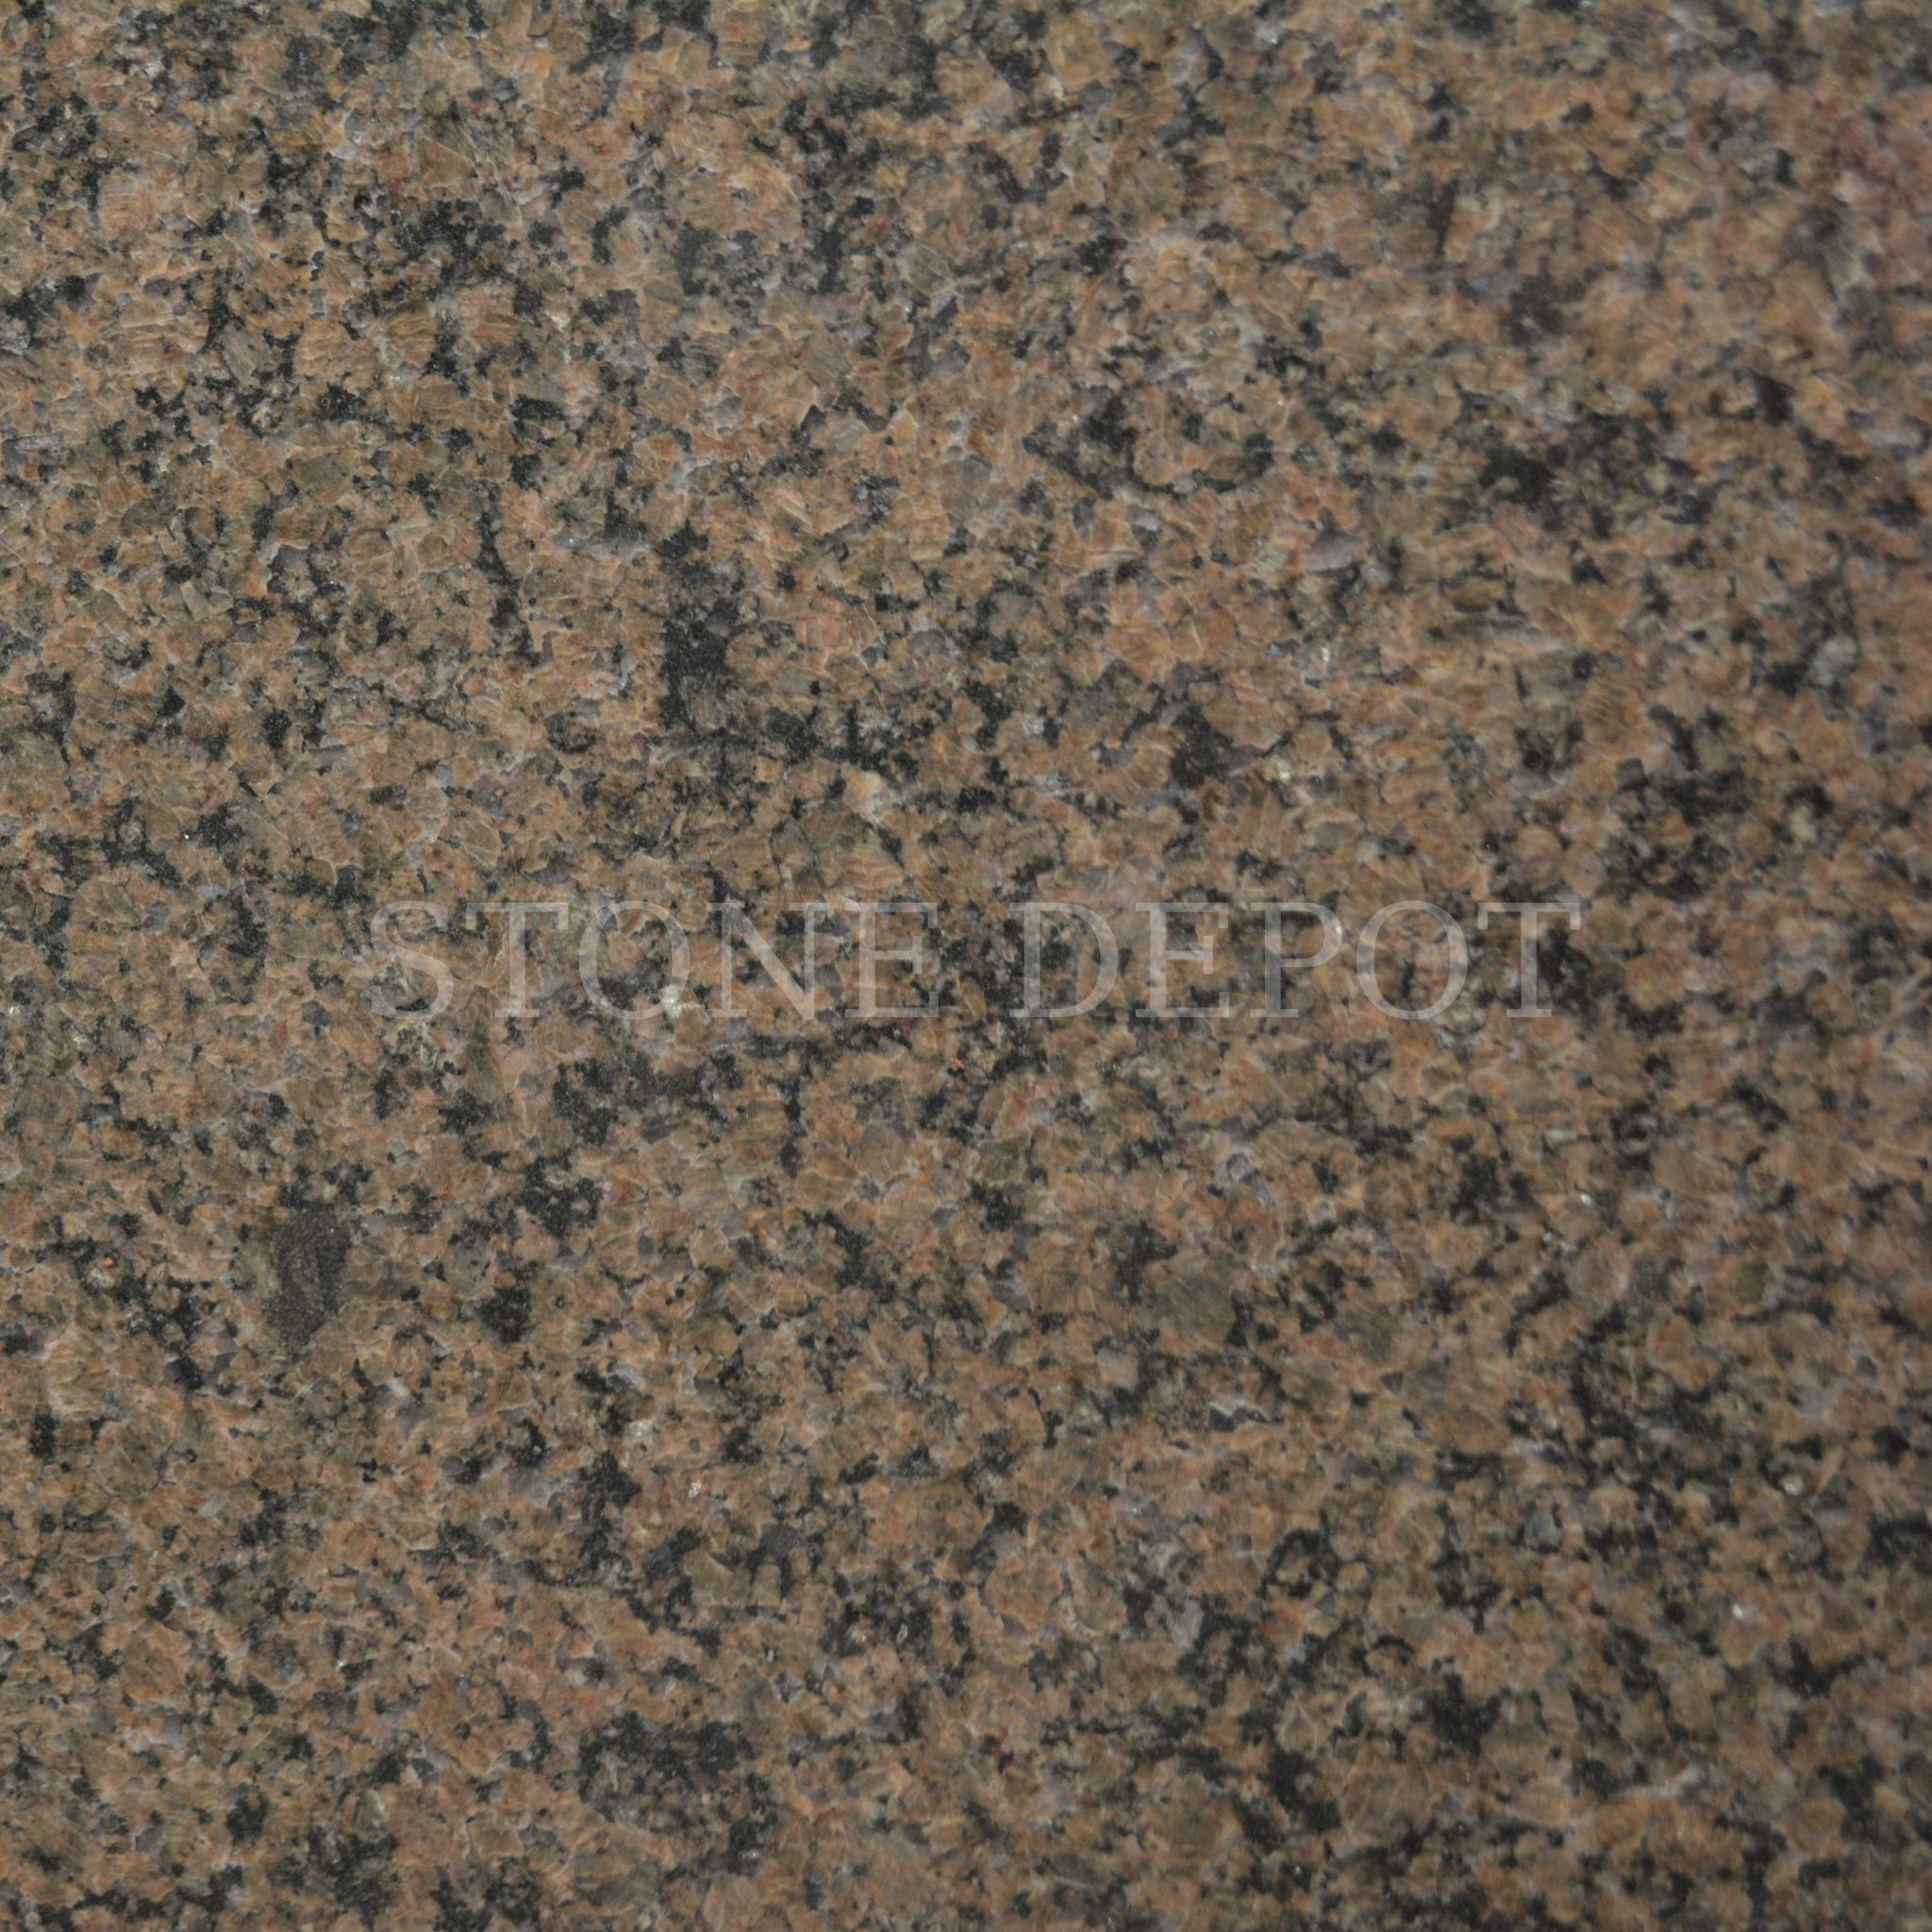 Merry Gold Granite, Brown Granite for Sale in the Philippines